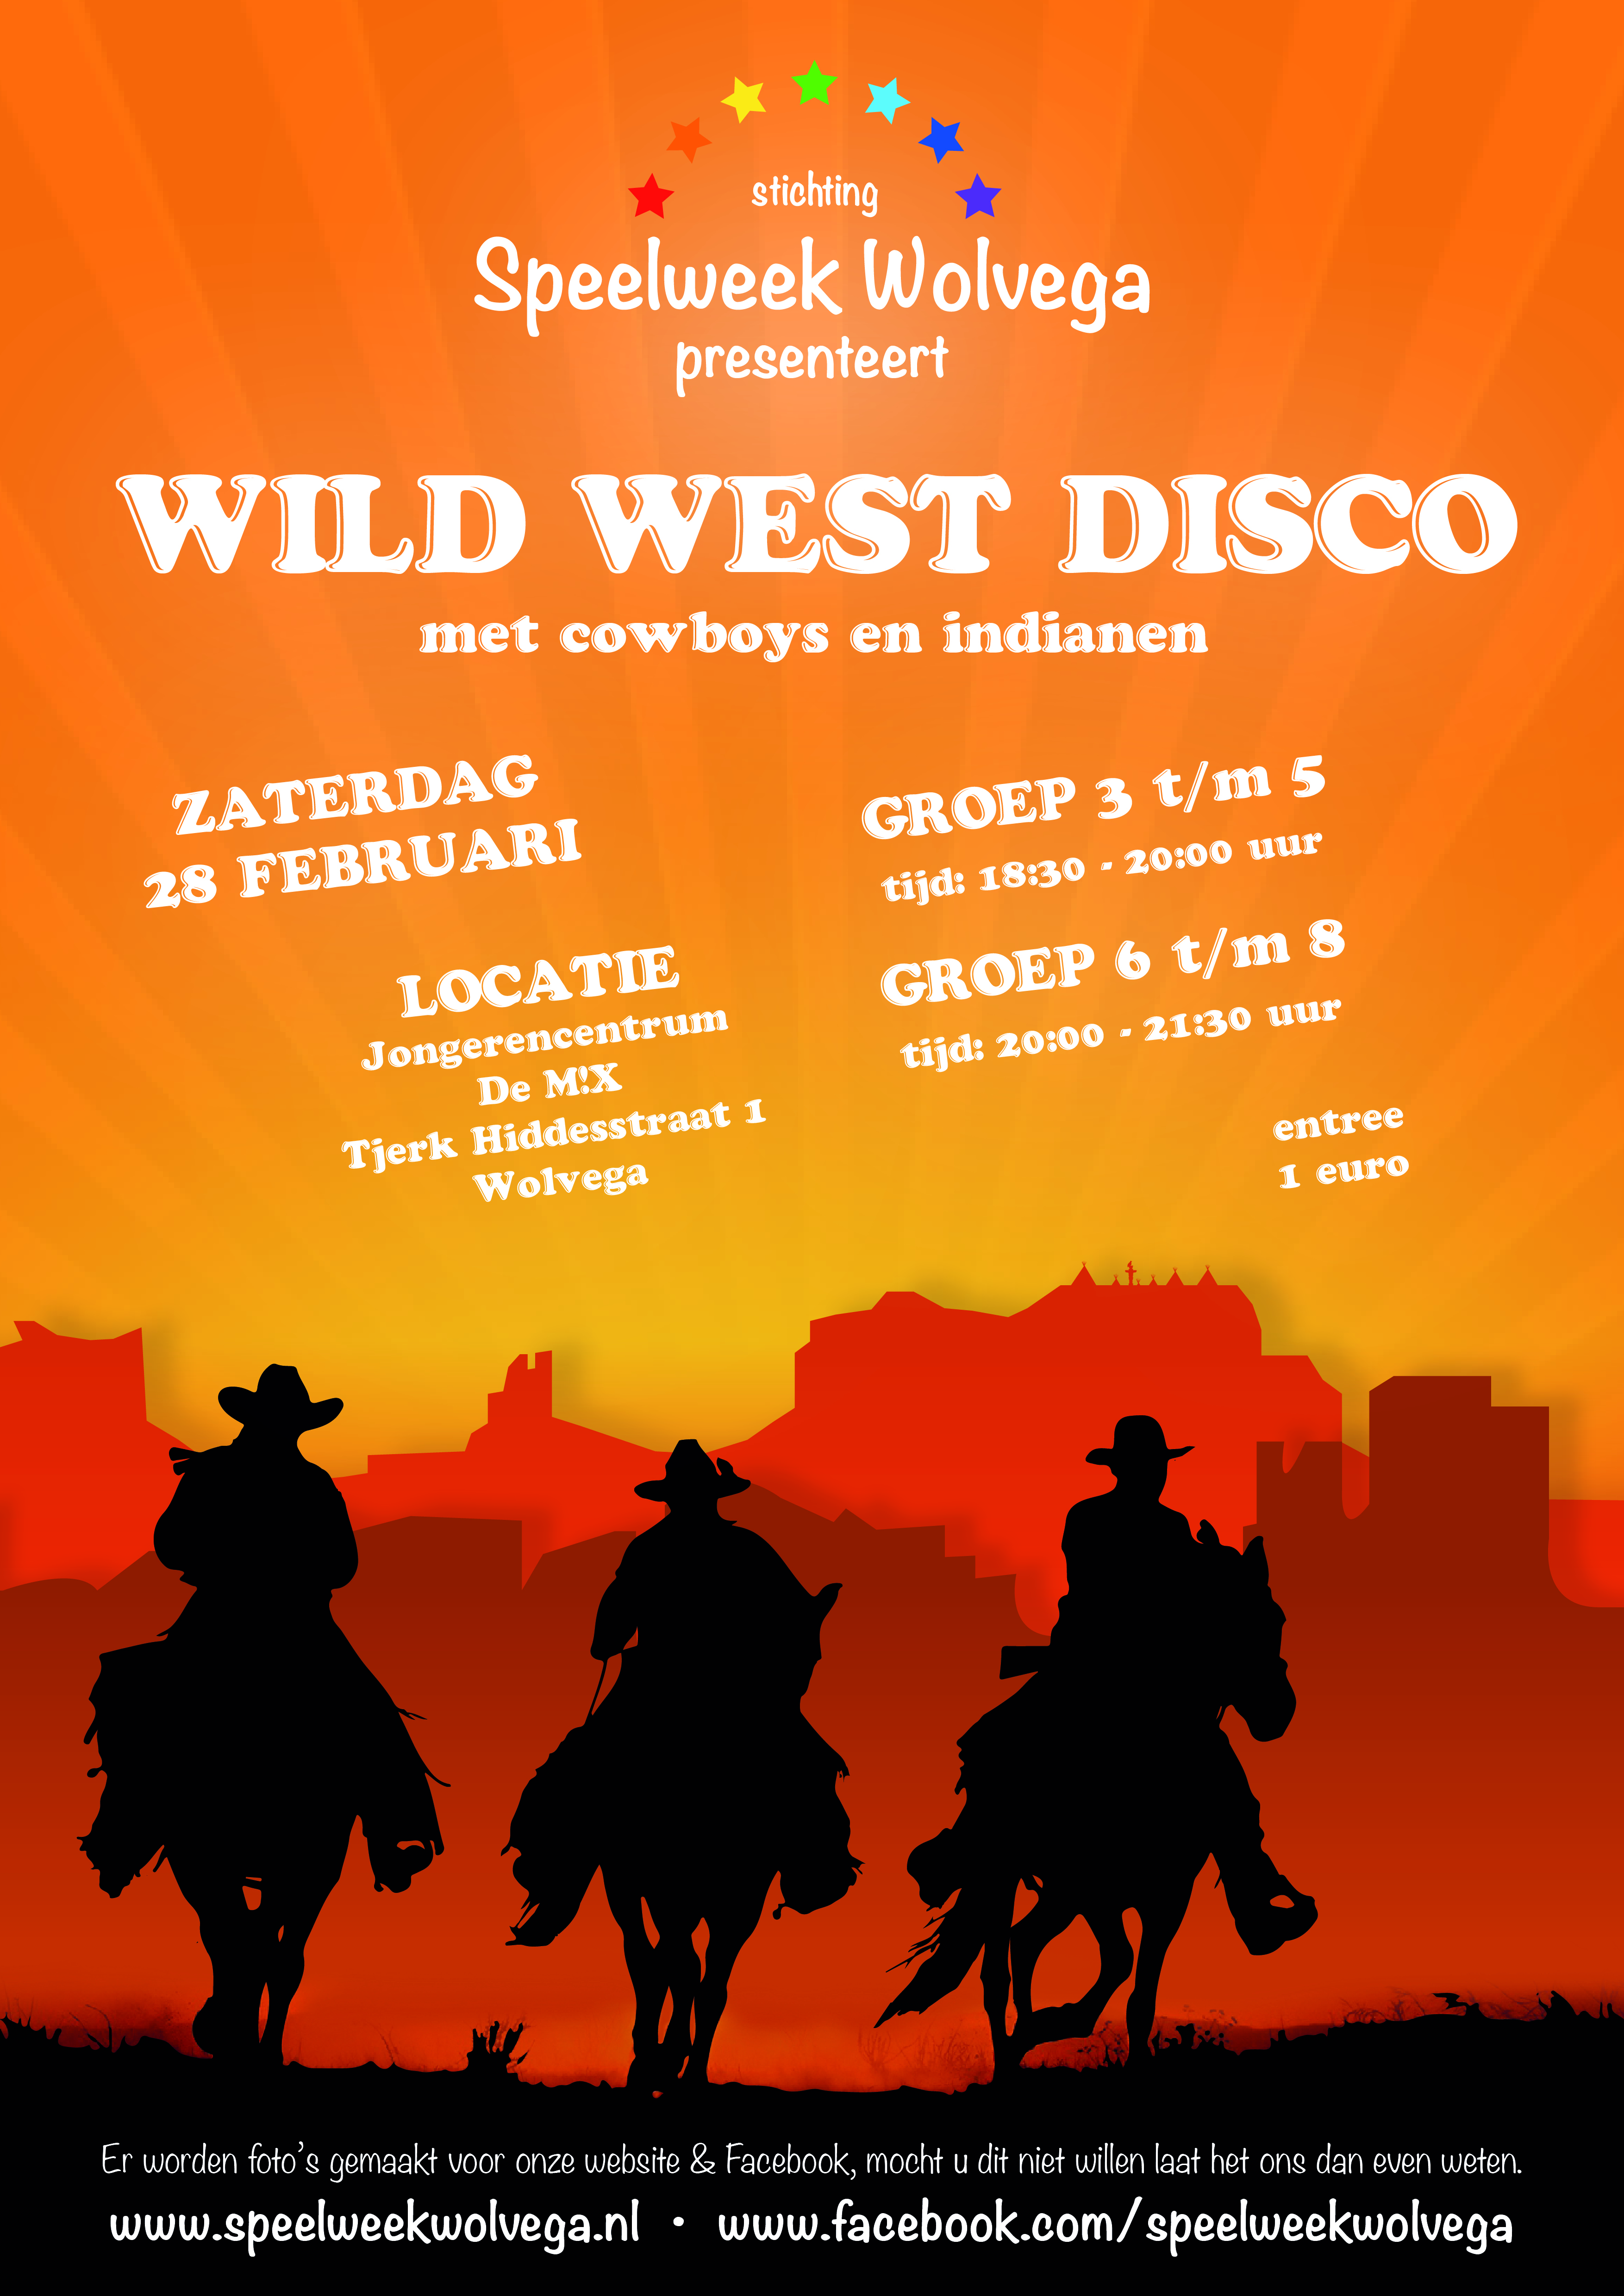 Wild West Disco | Speelweek Wolvega